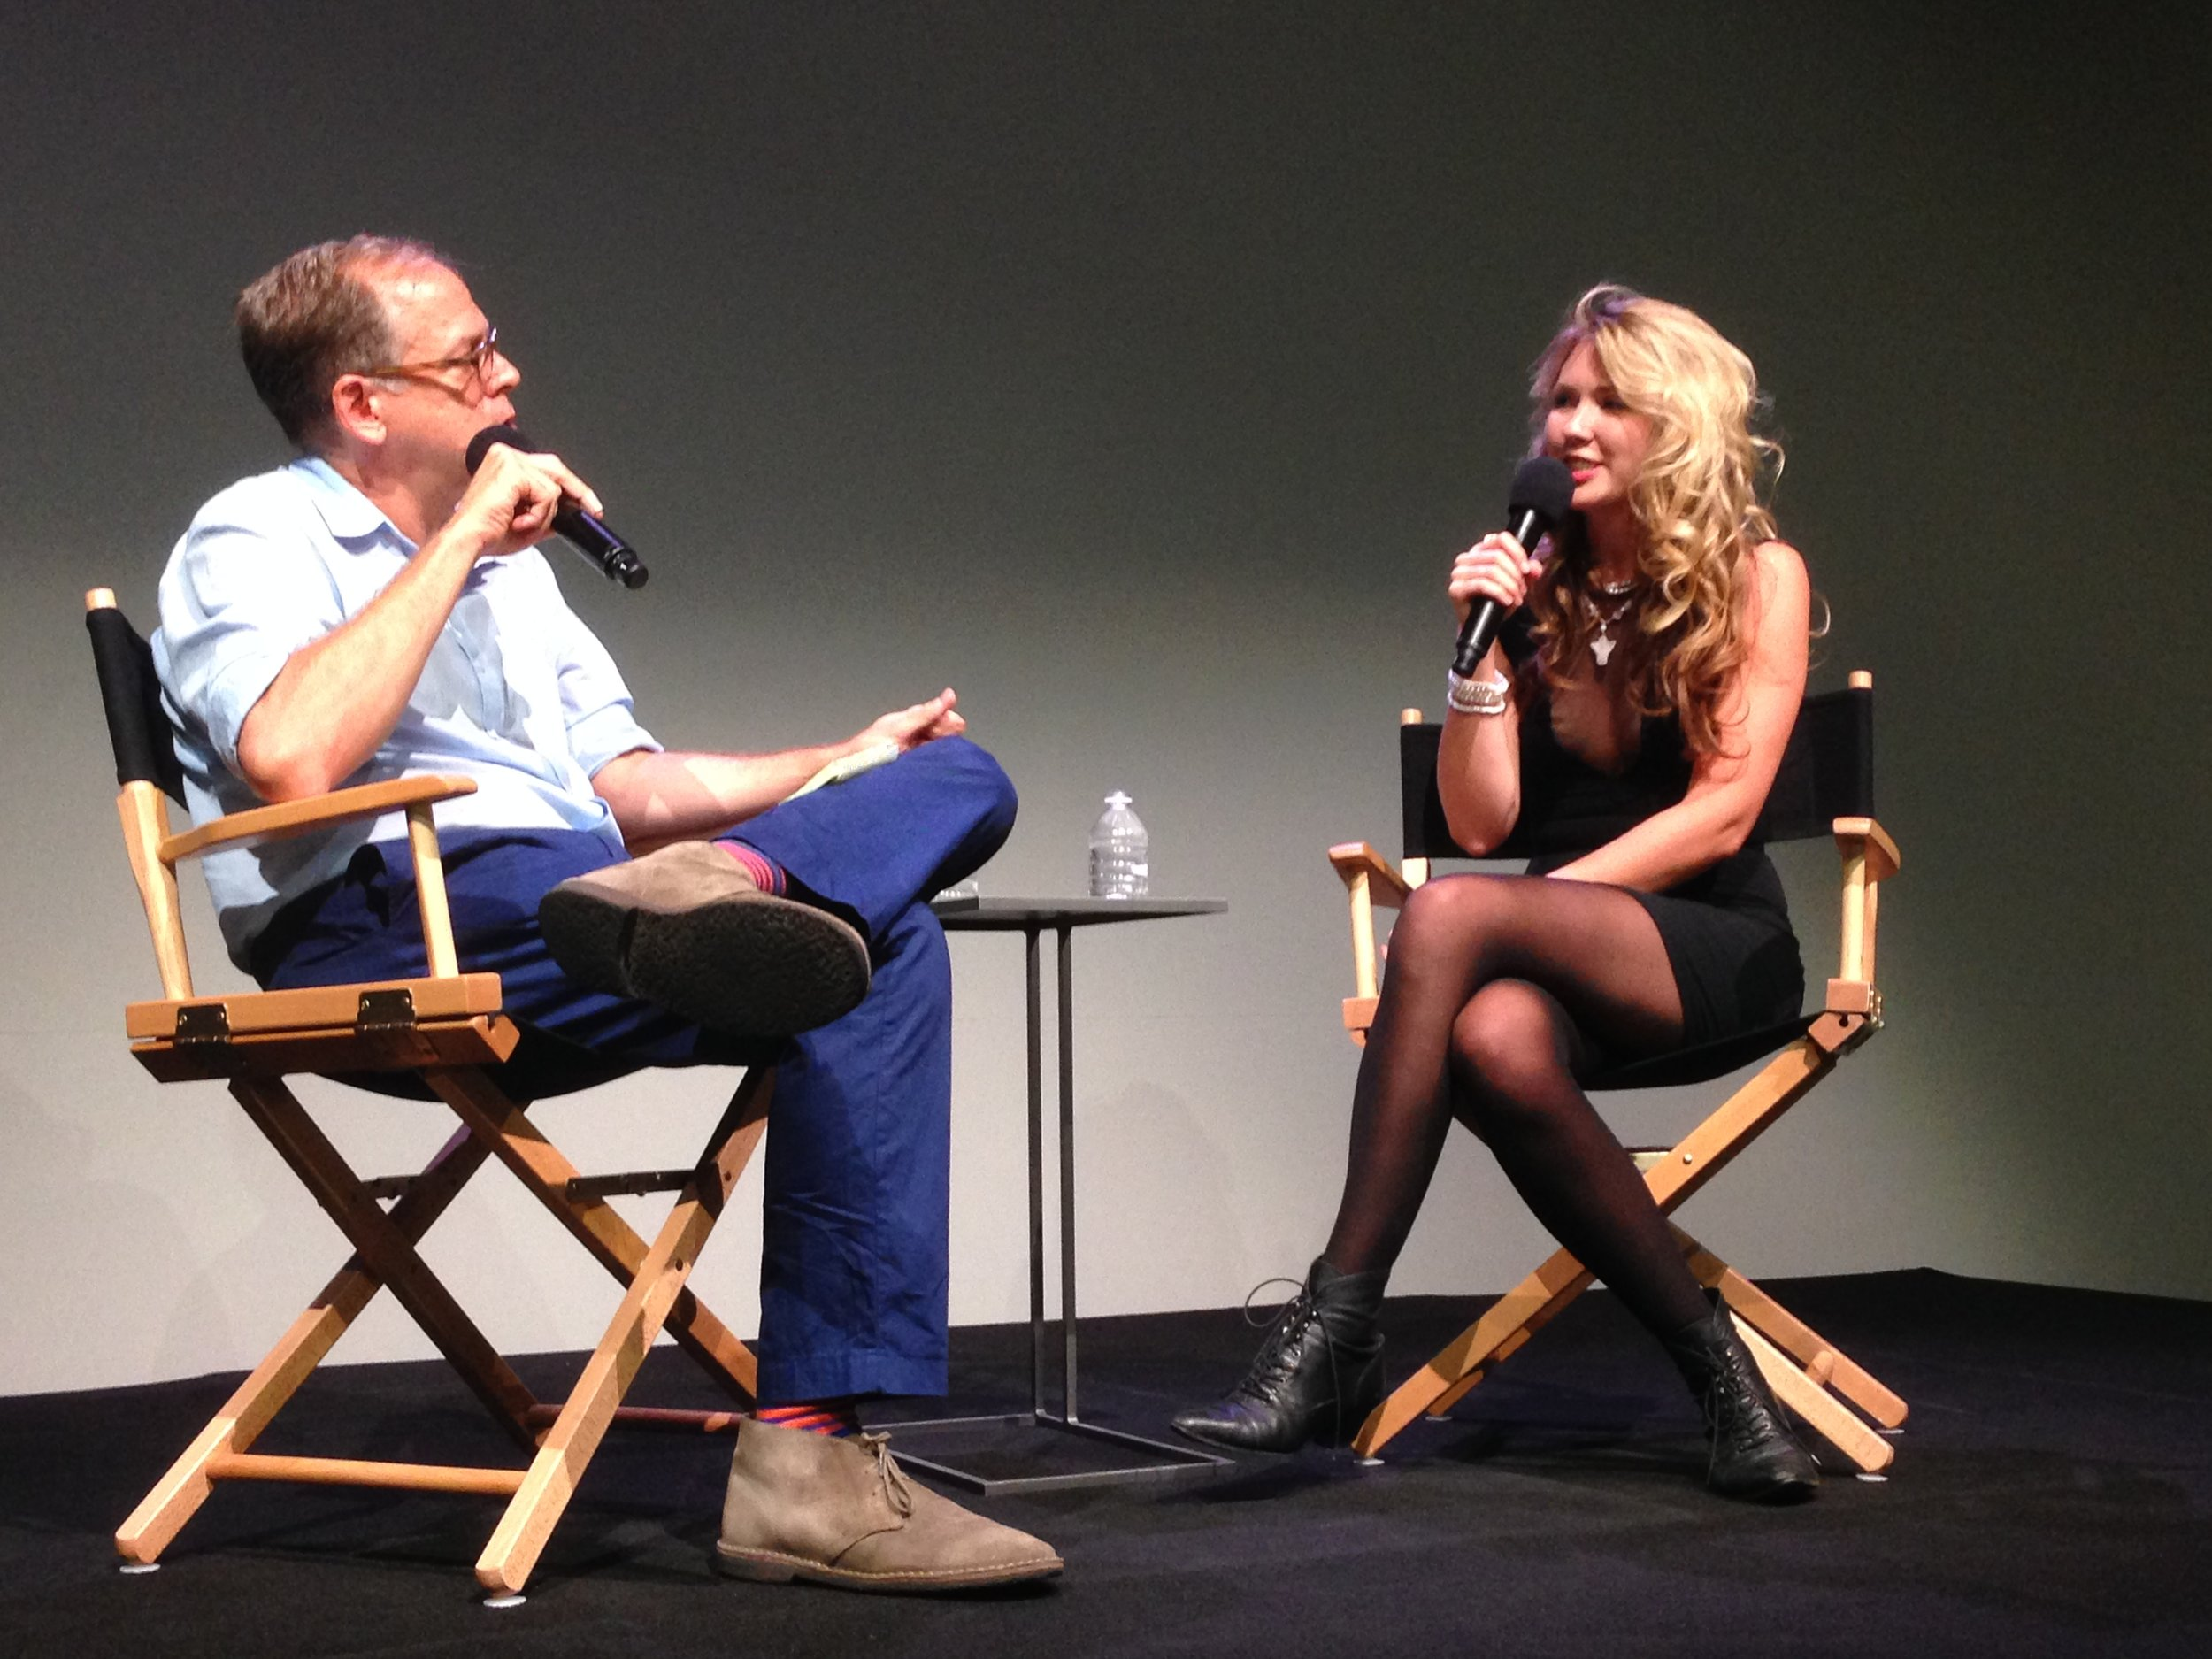 Beatie Wolfe - SoHo, New York - Apple Store Craig Marks and Beatie Wolfe